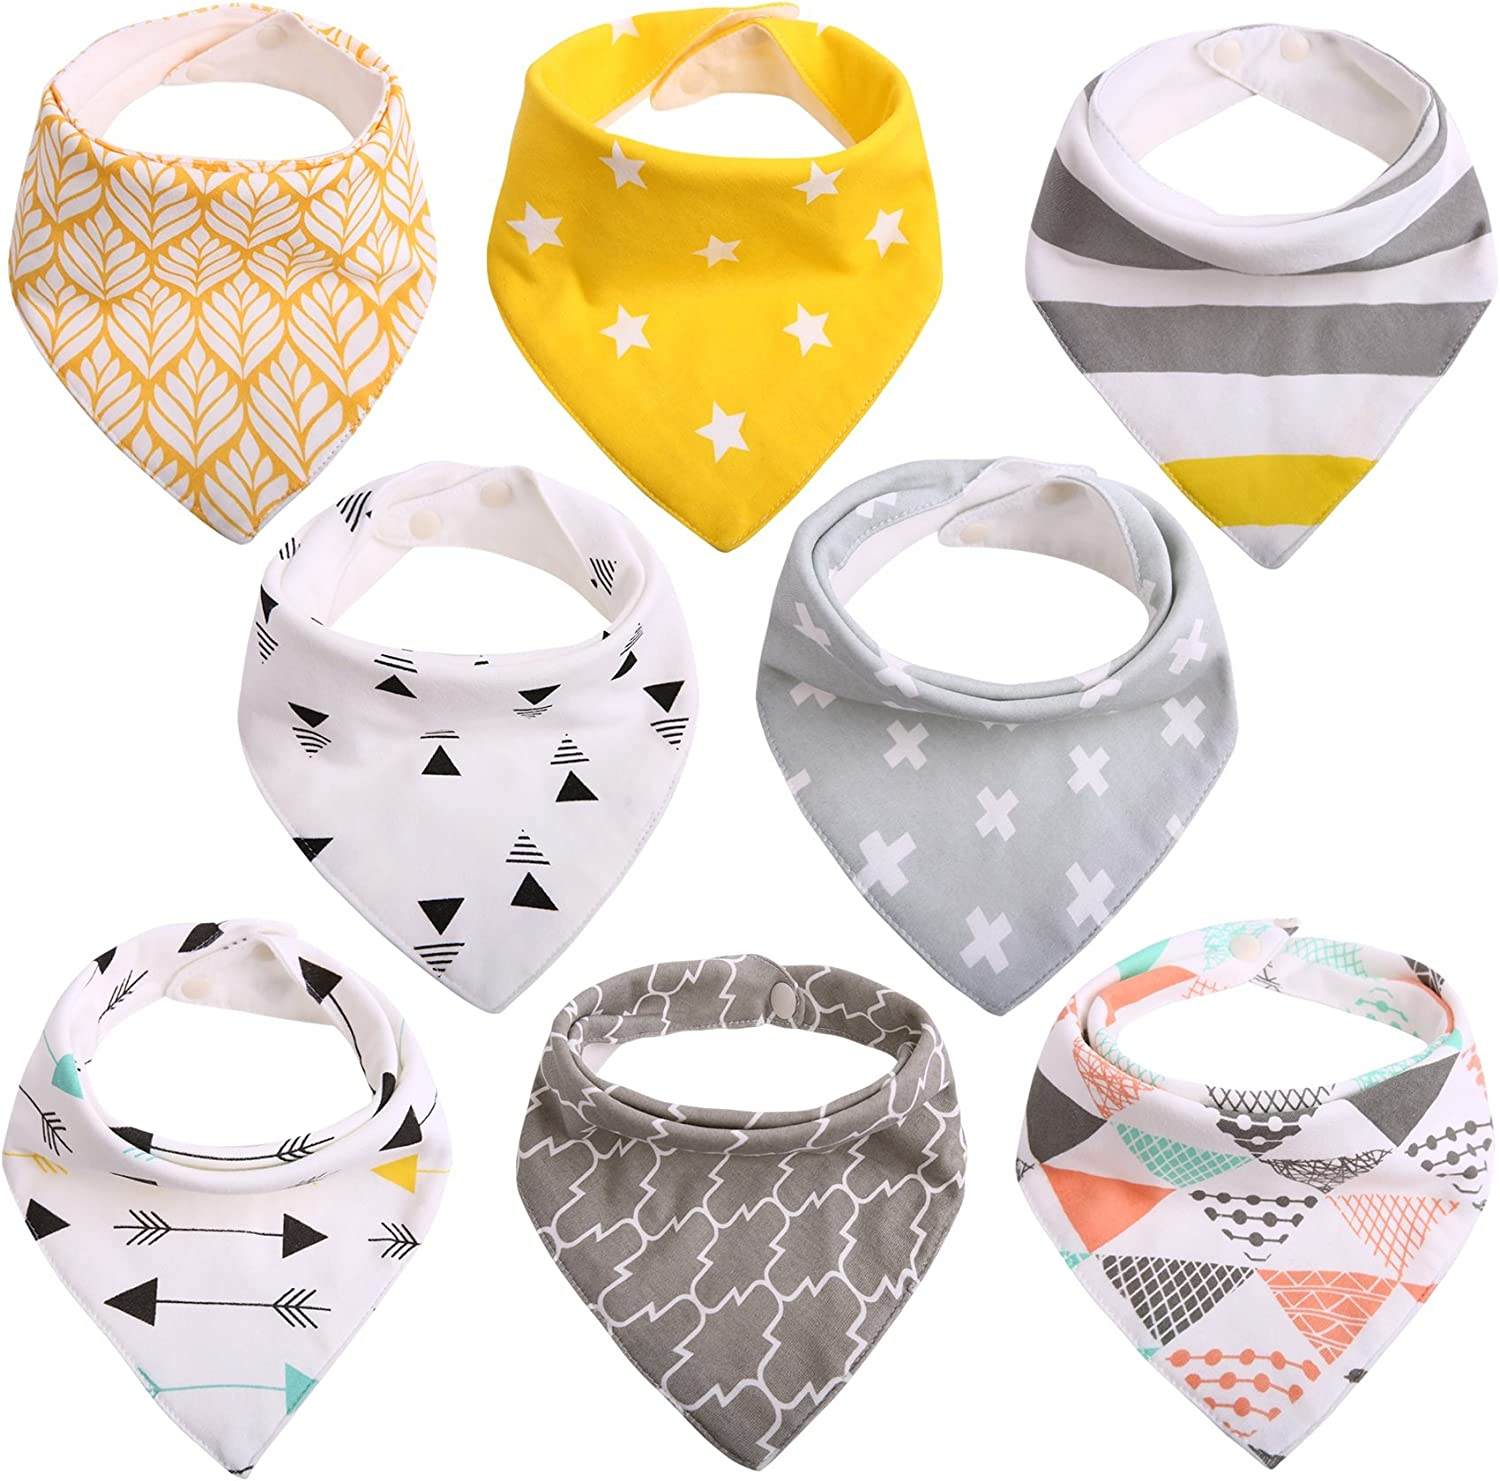 Baby Dribble Bibs Bandana for Girls Boys Unisex Set Cotton Gift Pack for Teething Fit Newborn Toddlers Soft Absorbent with Adjustable Snap Closure Stylish Pattern Model 02 Pack of 8 by CIT/ÉTOILE